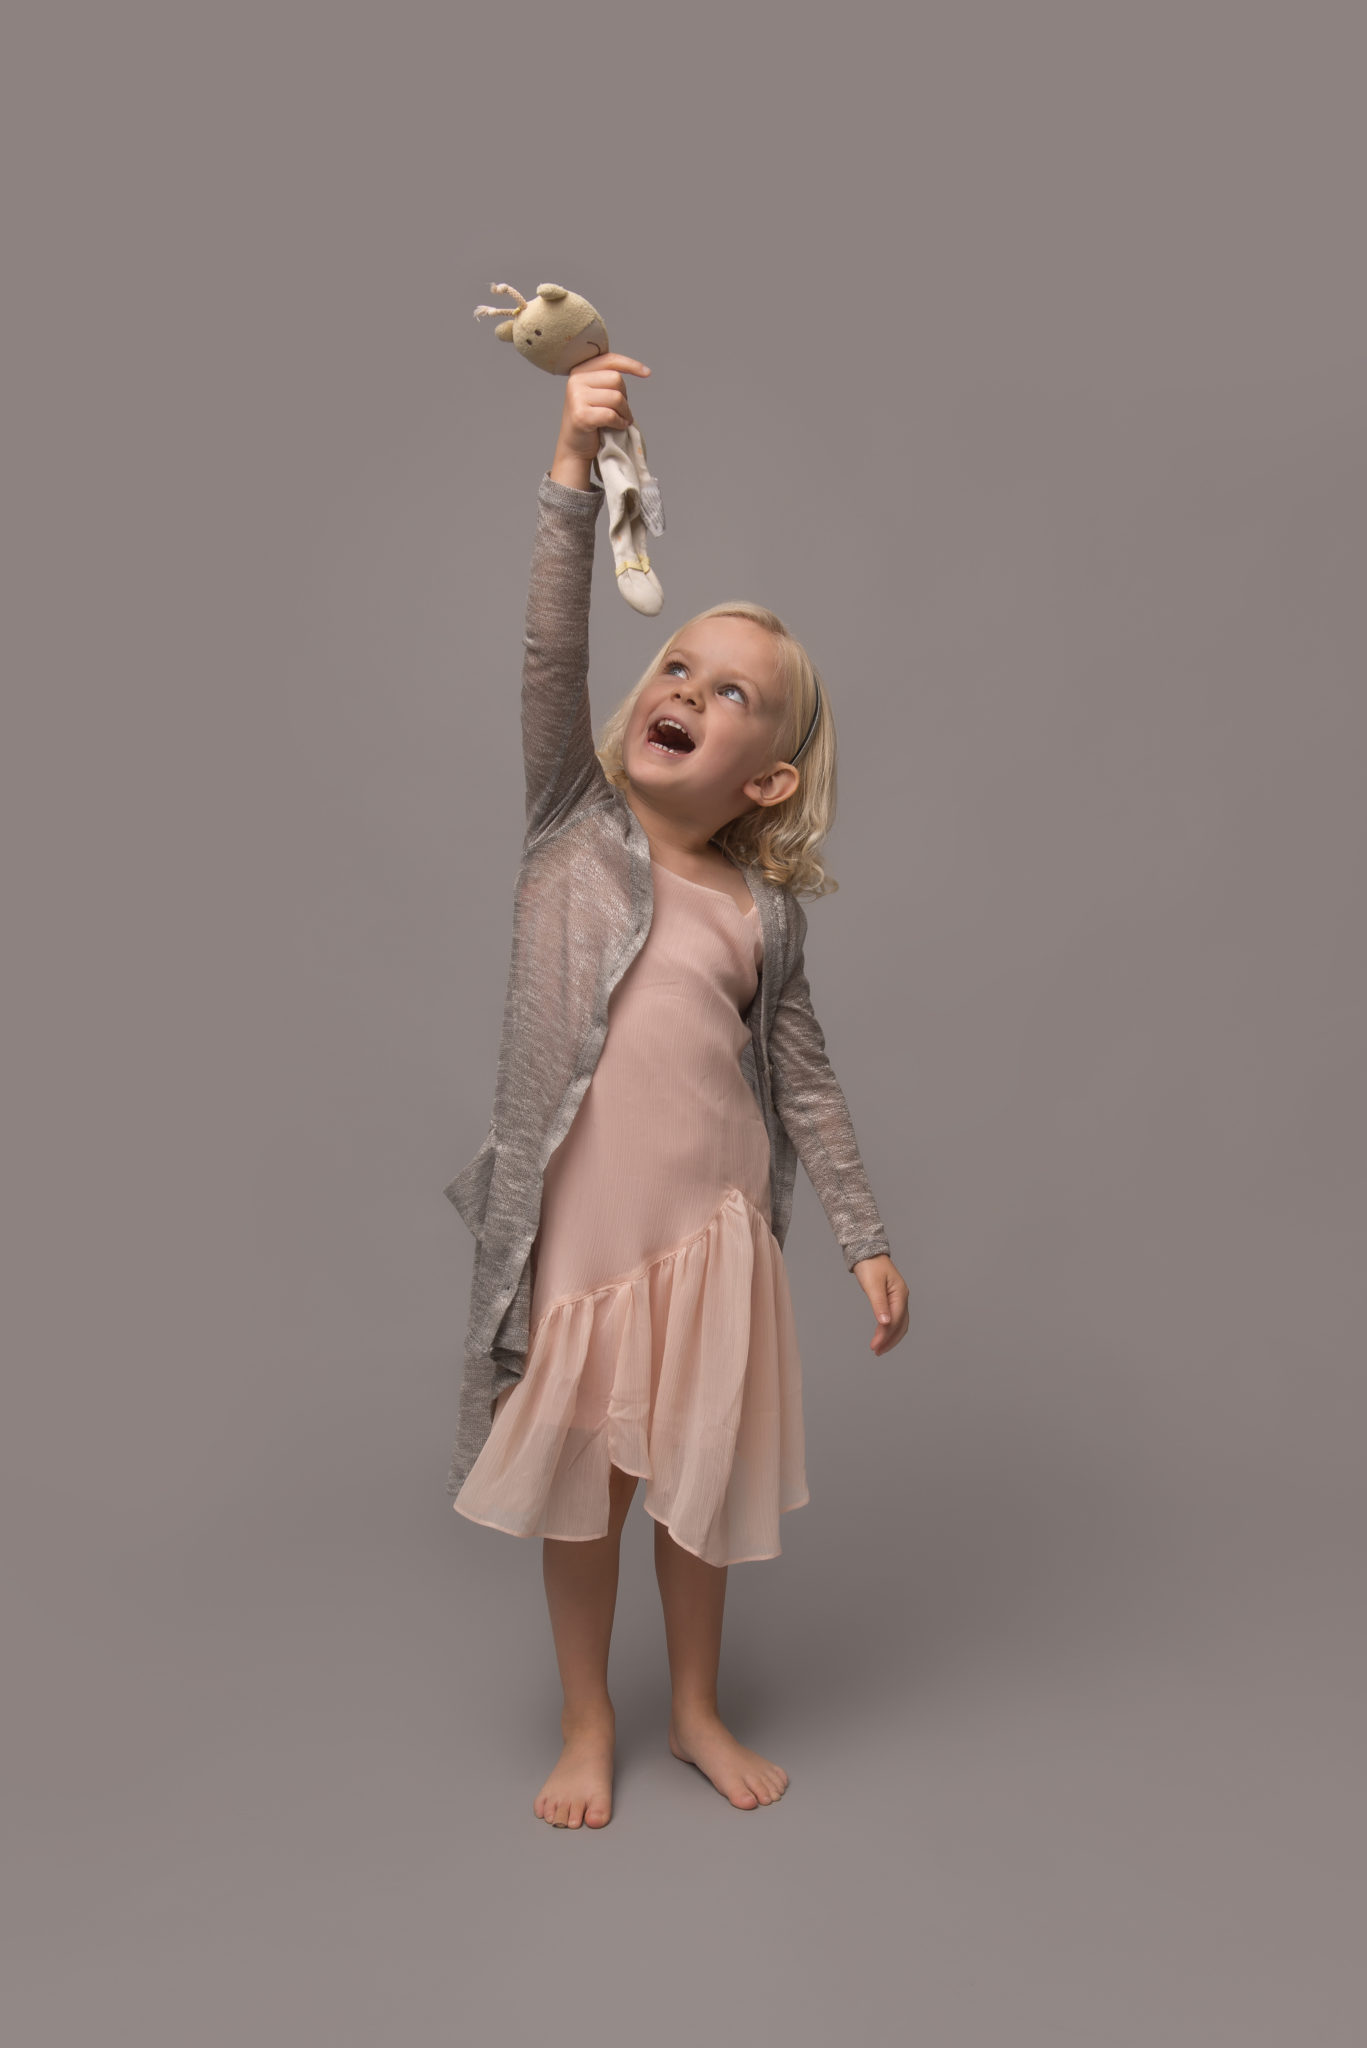 Child studio photographer Illinois